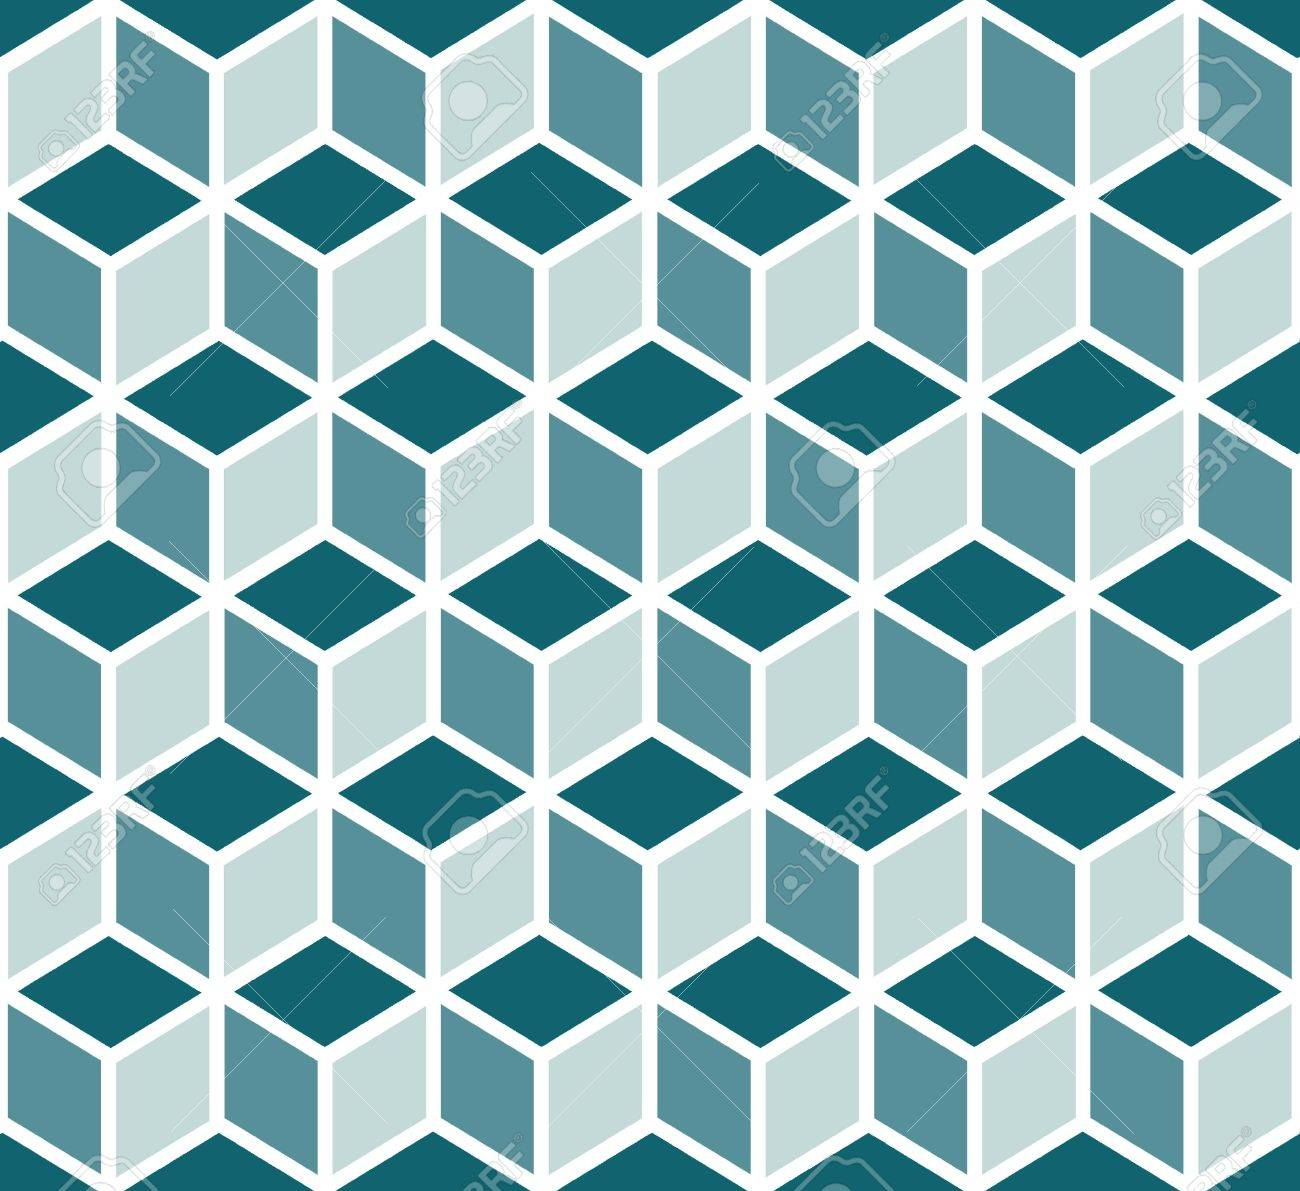 seamless 3d geometric patterns by cubes royalty free cliparts